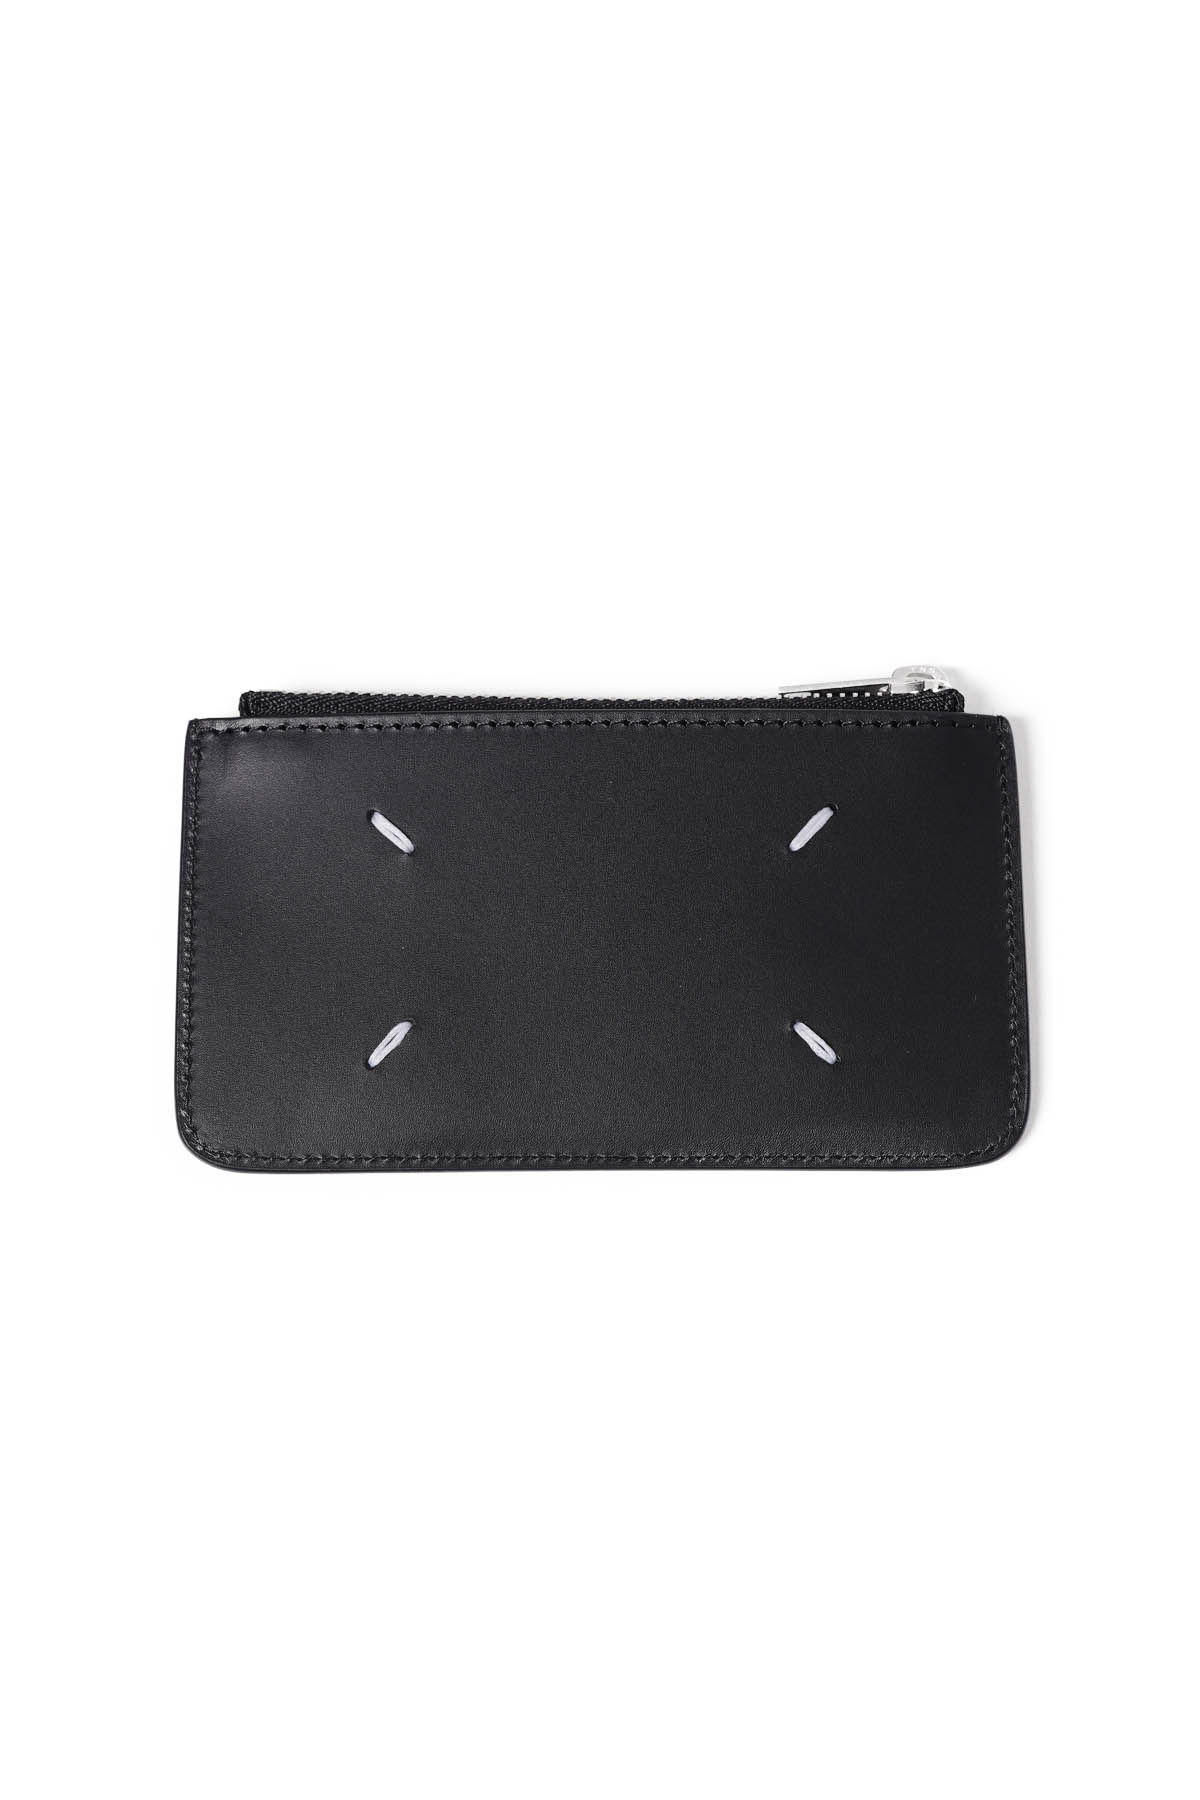 Leather Card Holder Black[2021SS]